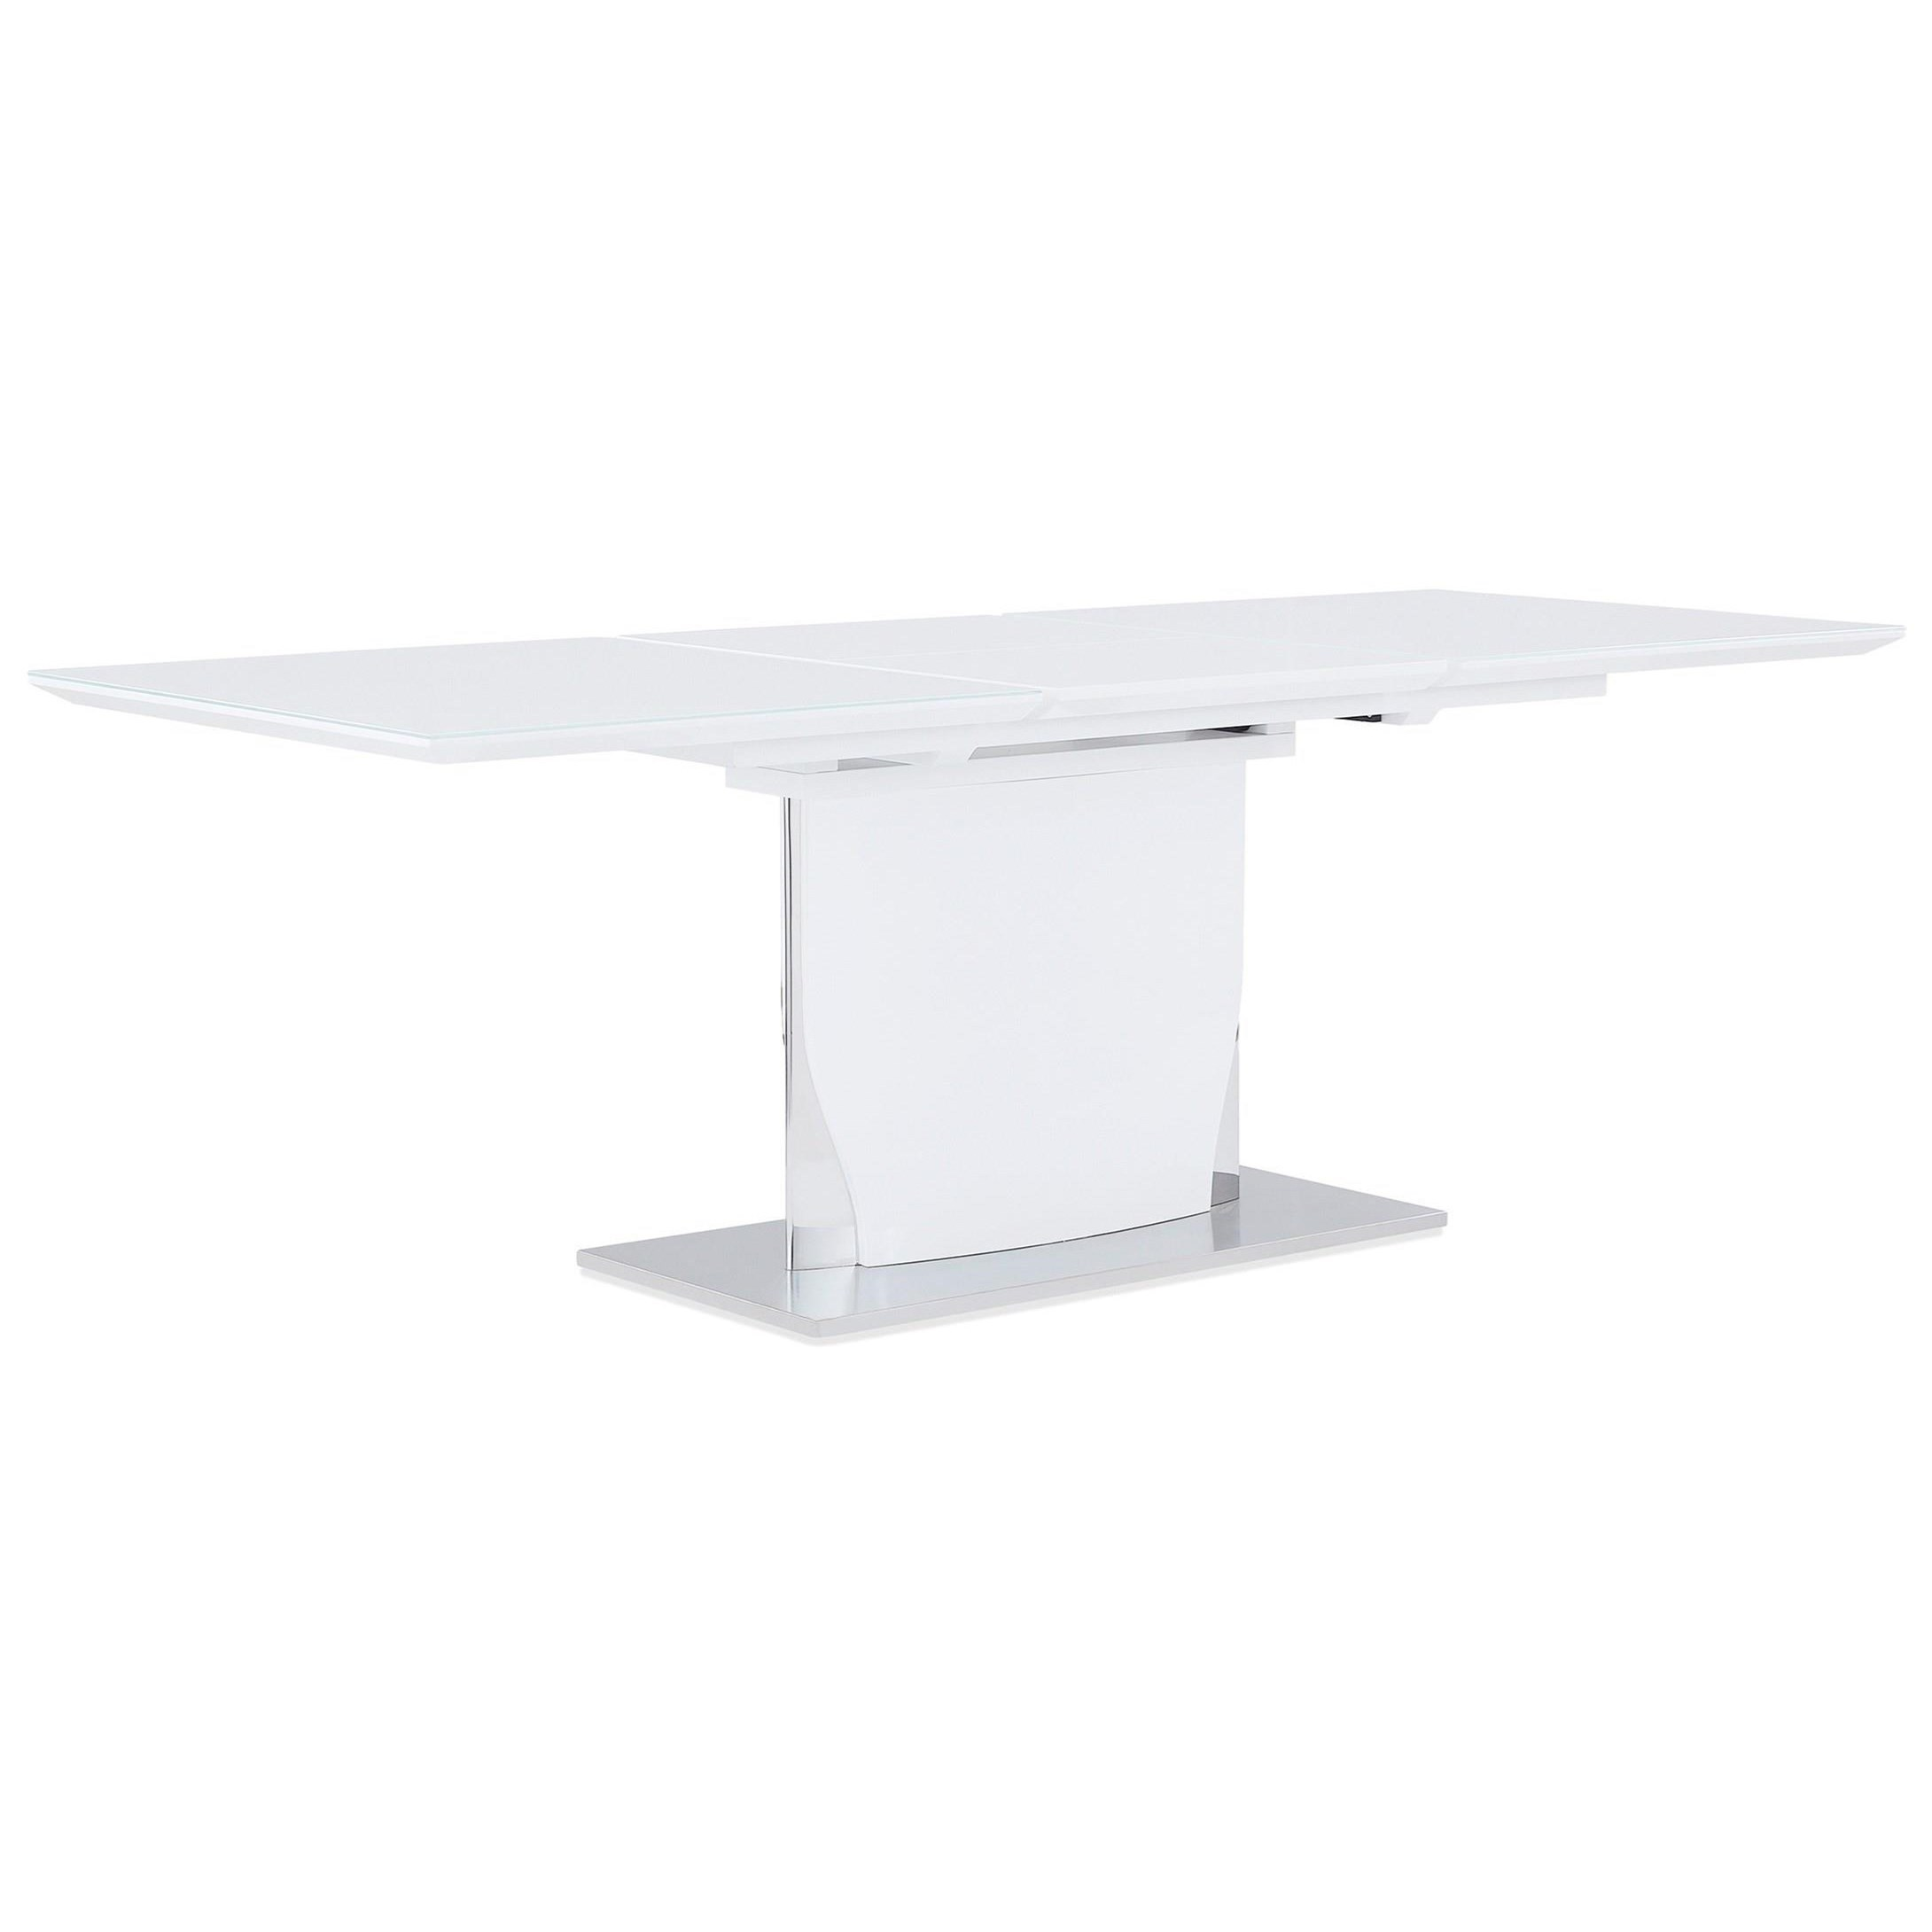 D2279 High Gloss Dining Table by Global Furniture at Nassau Furniture and Mattress